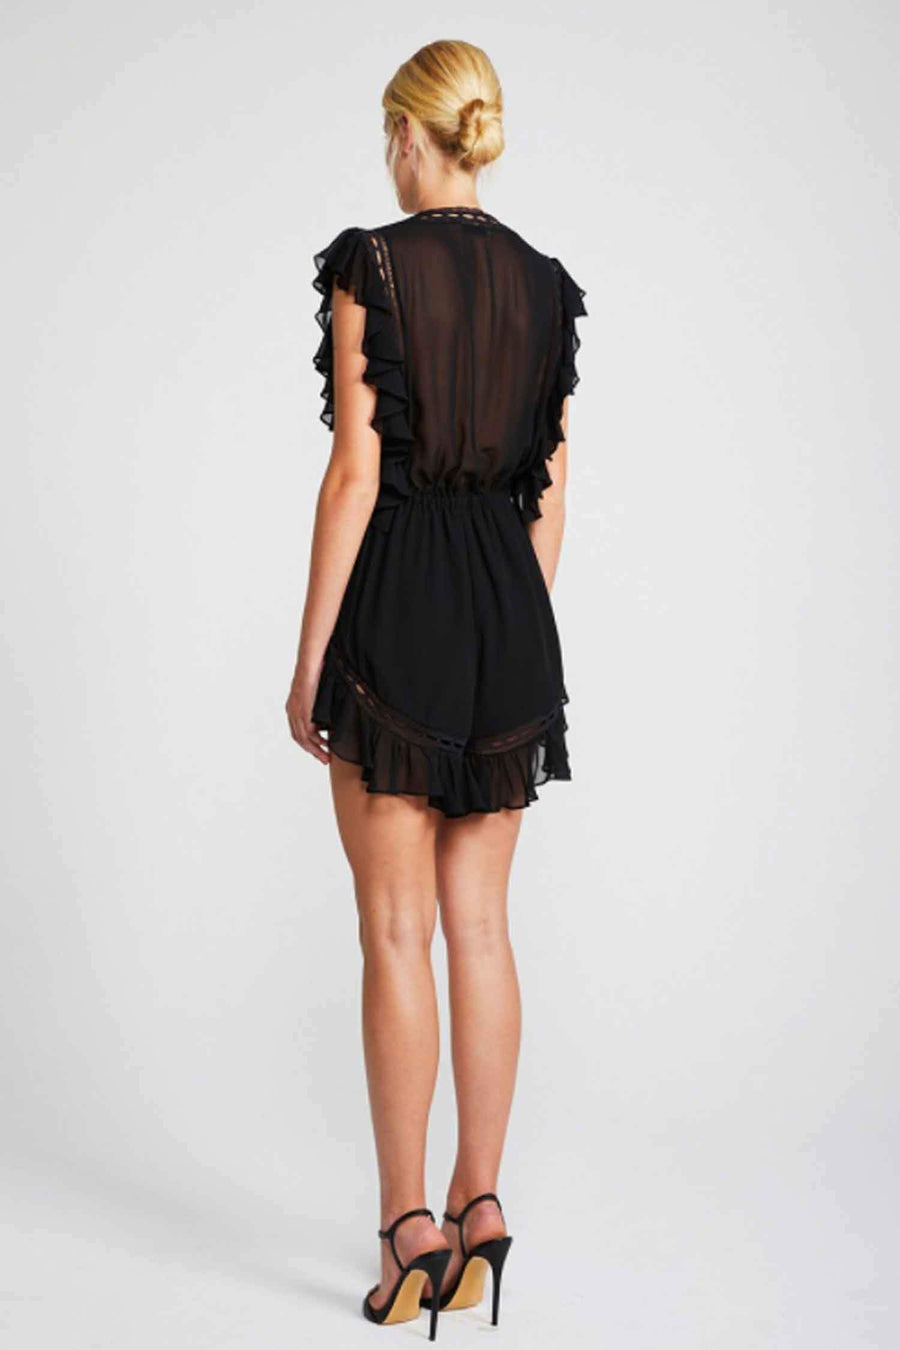 Eclipse Drawstring Playsuit in Black by Shona Joy Frockaholics.com